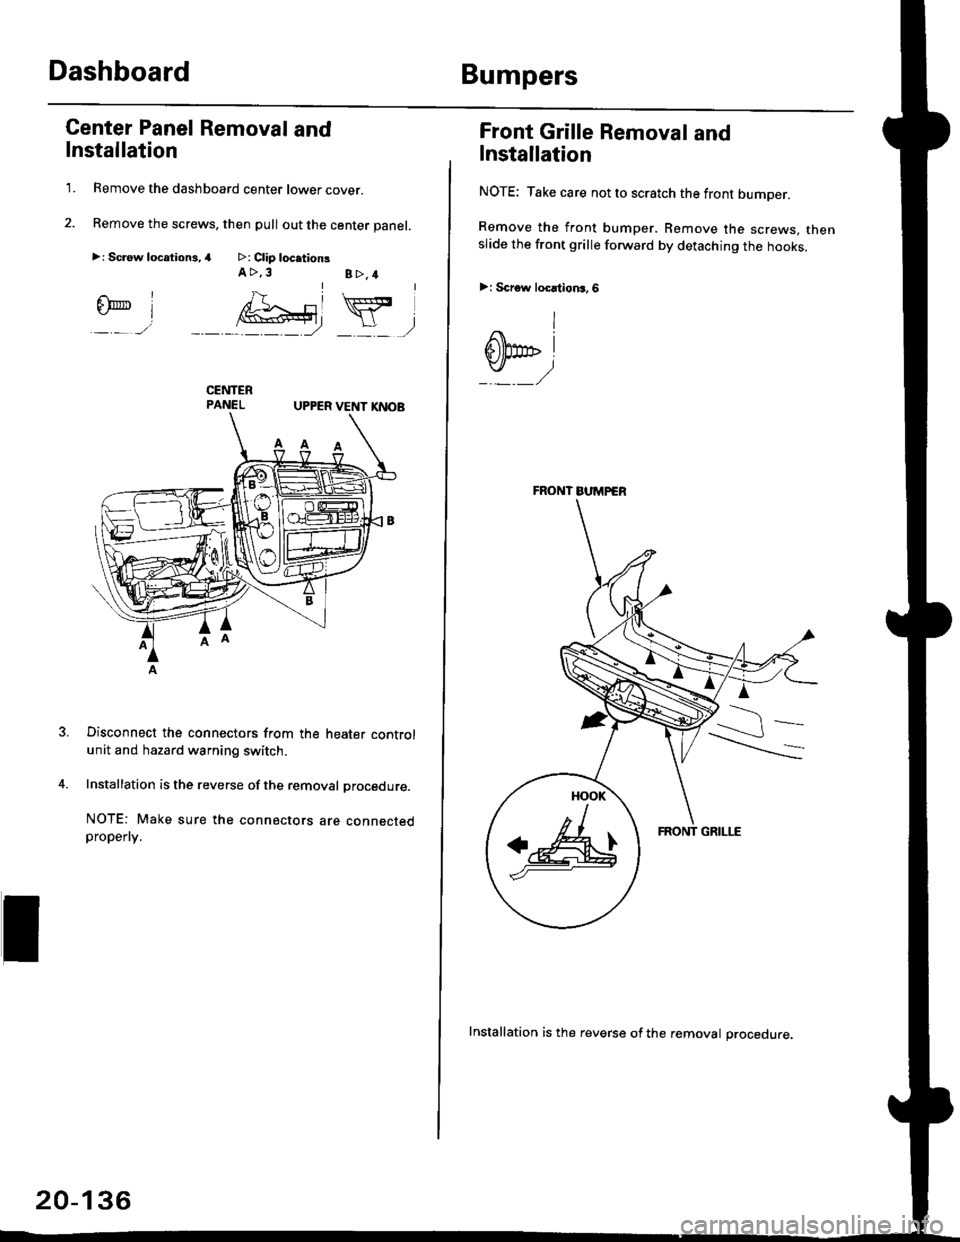 Warning Honda Civic 1998 6g Workshop Manual 98 Headlight Connector Page 1365